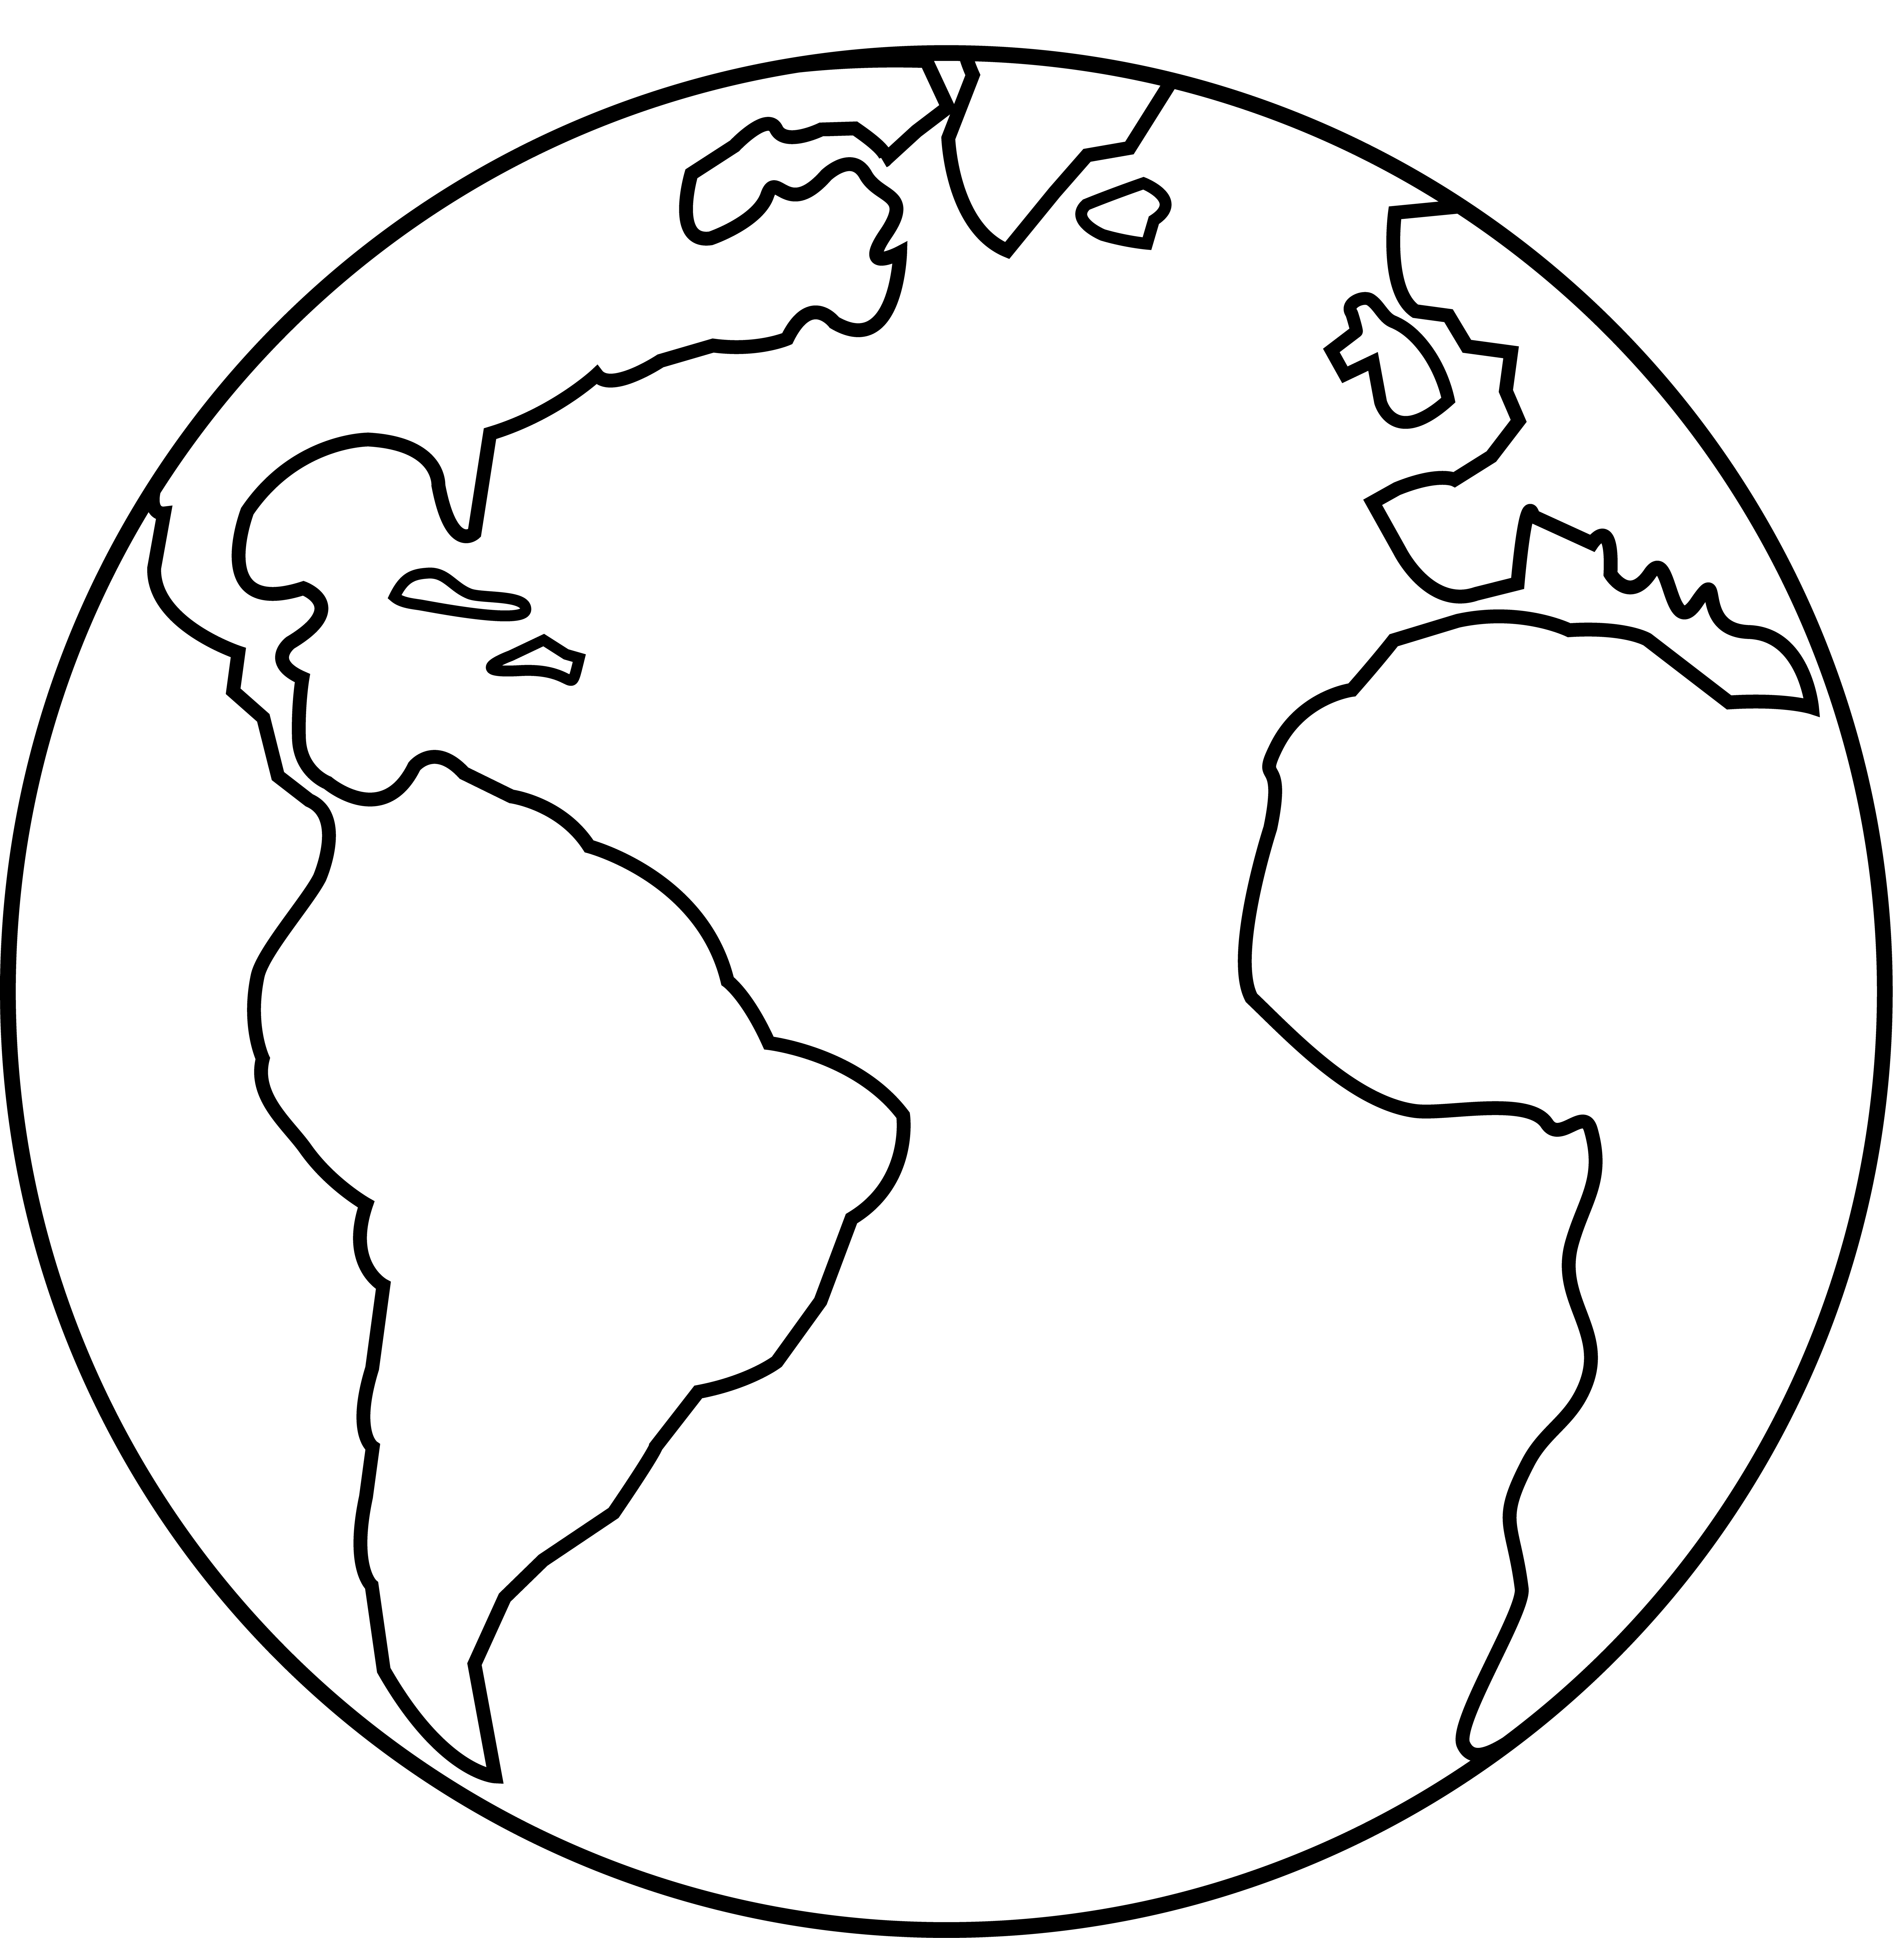 Planets clipart order. Earth globe drawing at